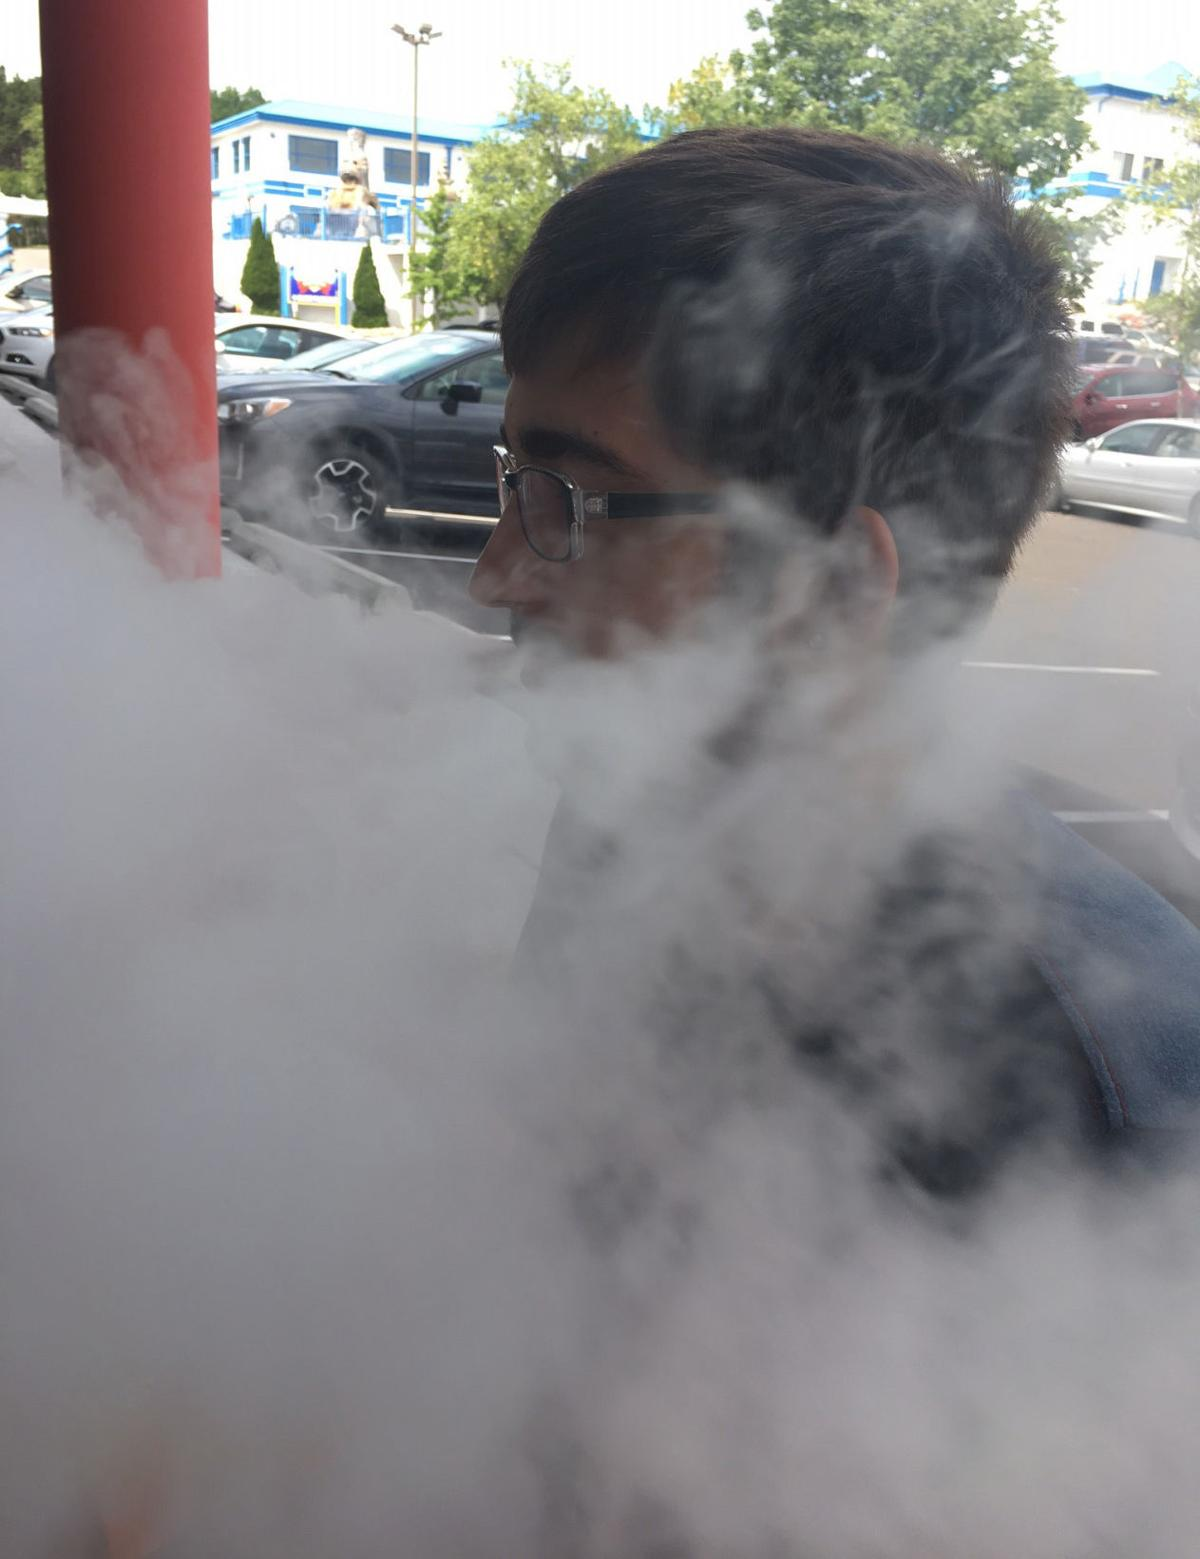 Vaping gains a foothold in region